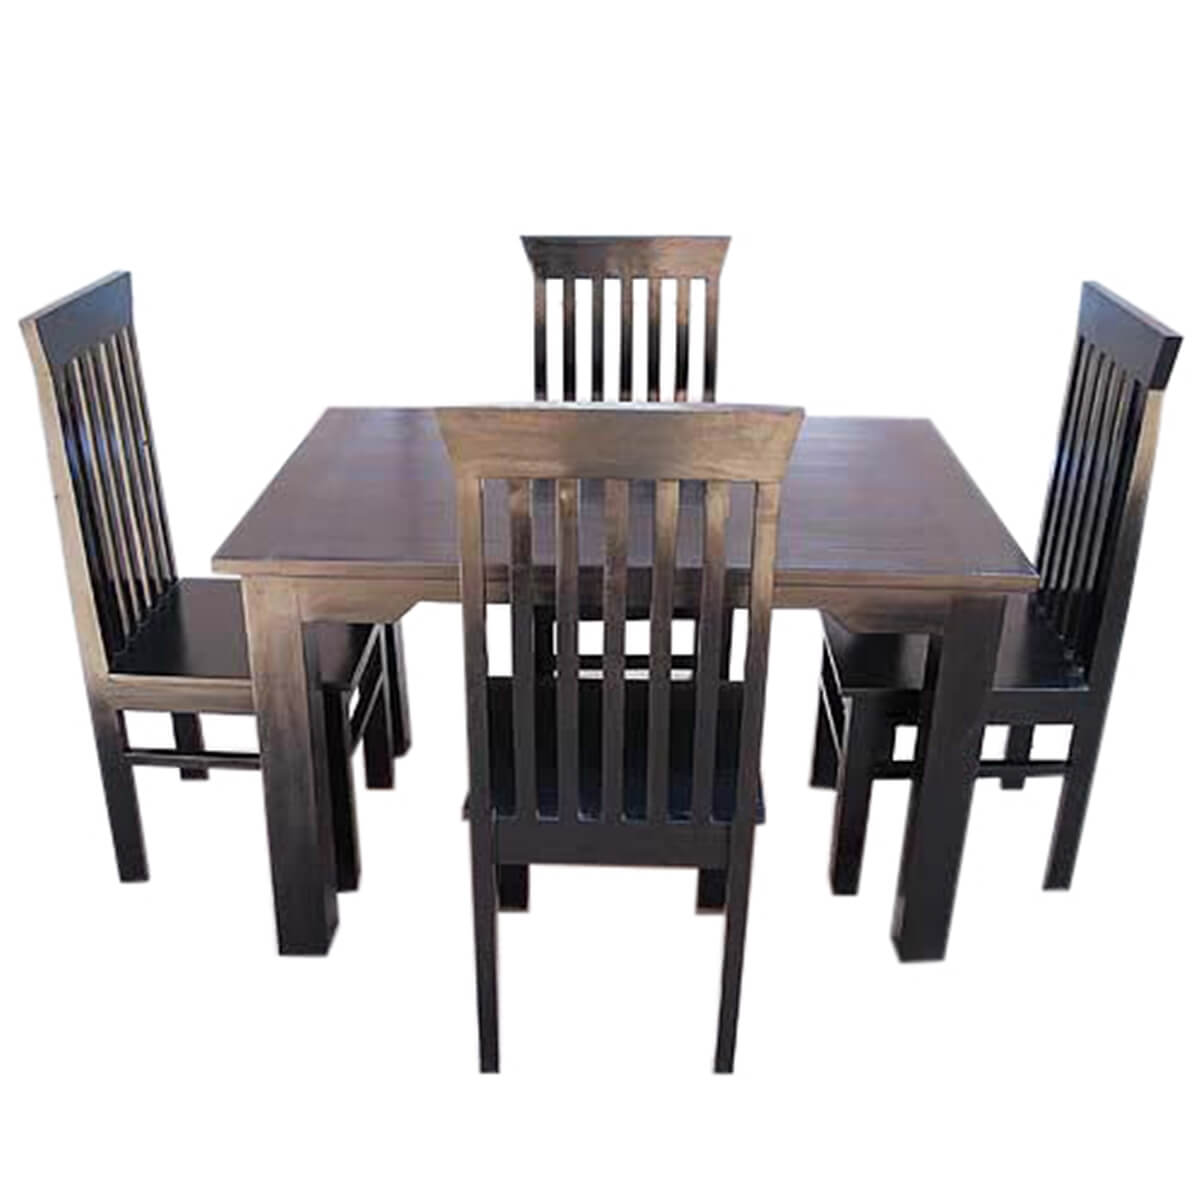 Contemporary lincoln kitchen dining room table chairs set for Dining table chairs